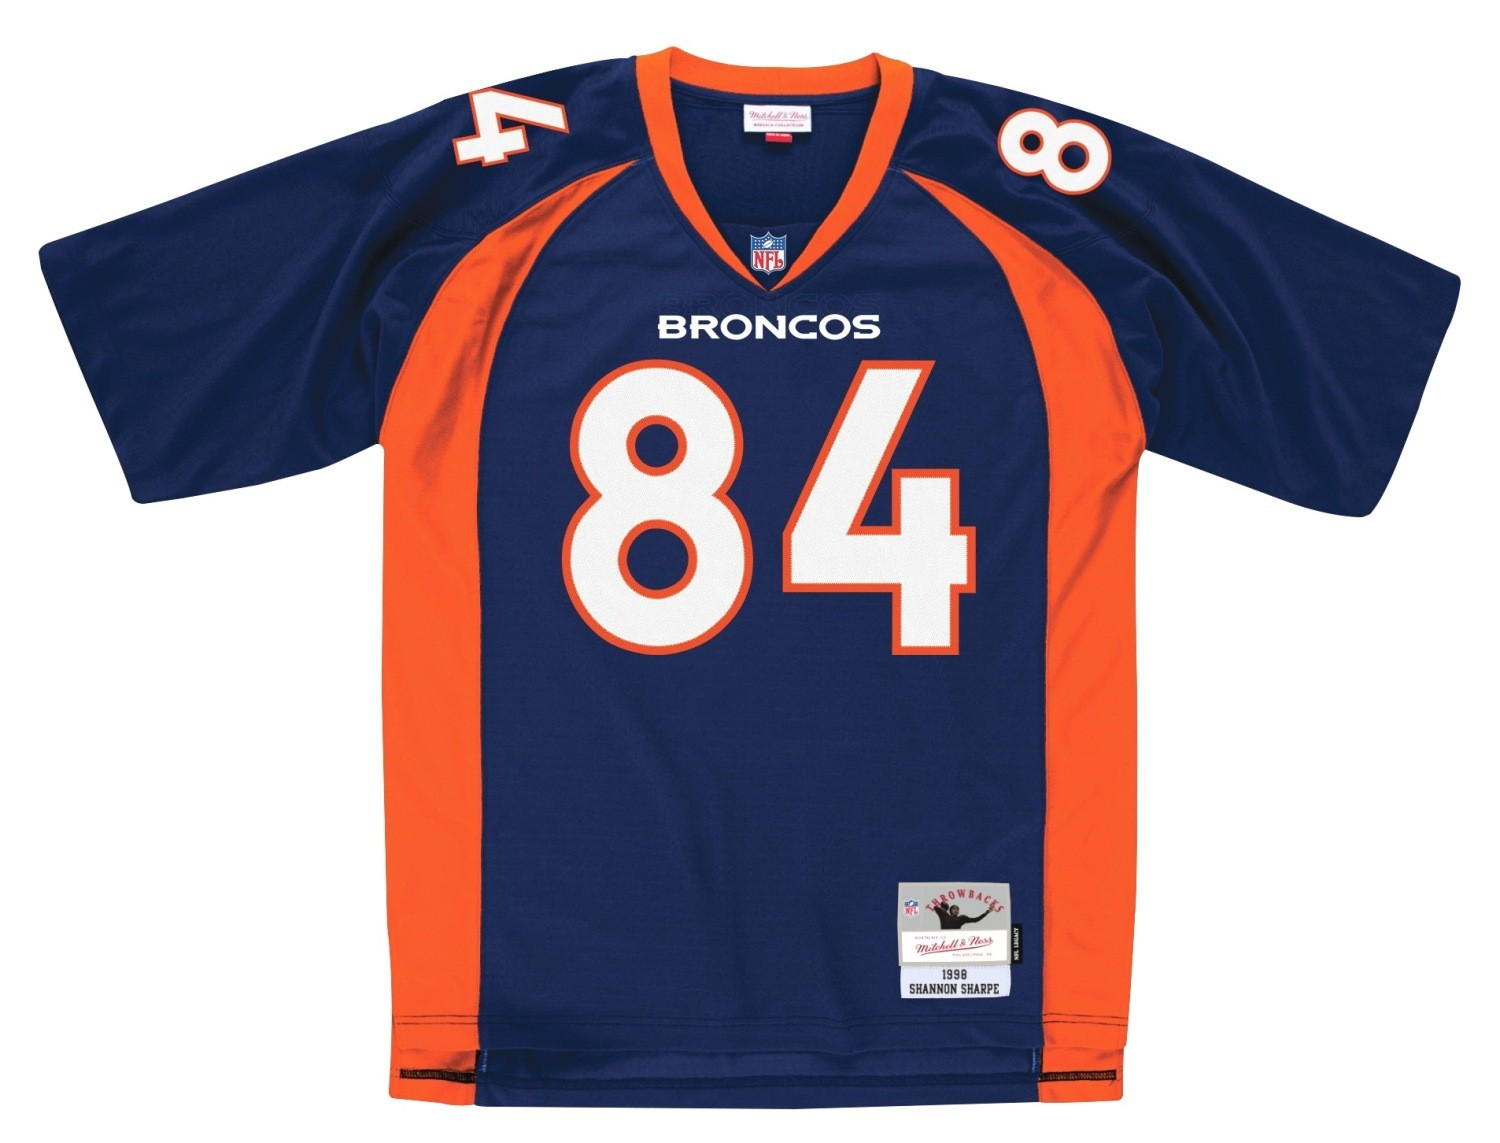 ec976c44e Shannon Sharpe Denver Broncos NFL Mitchell & Ness Throwback Premier Navy  Jersey